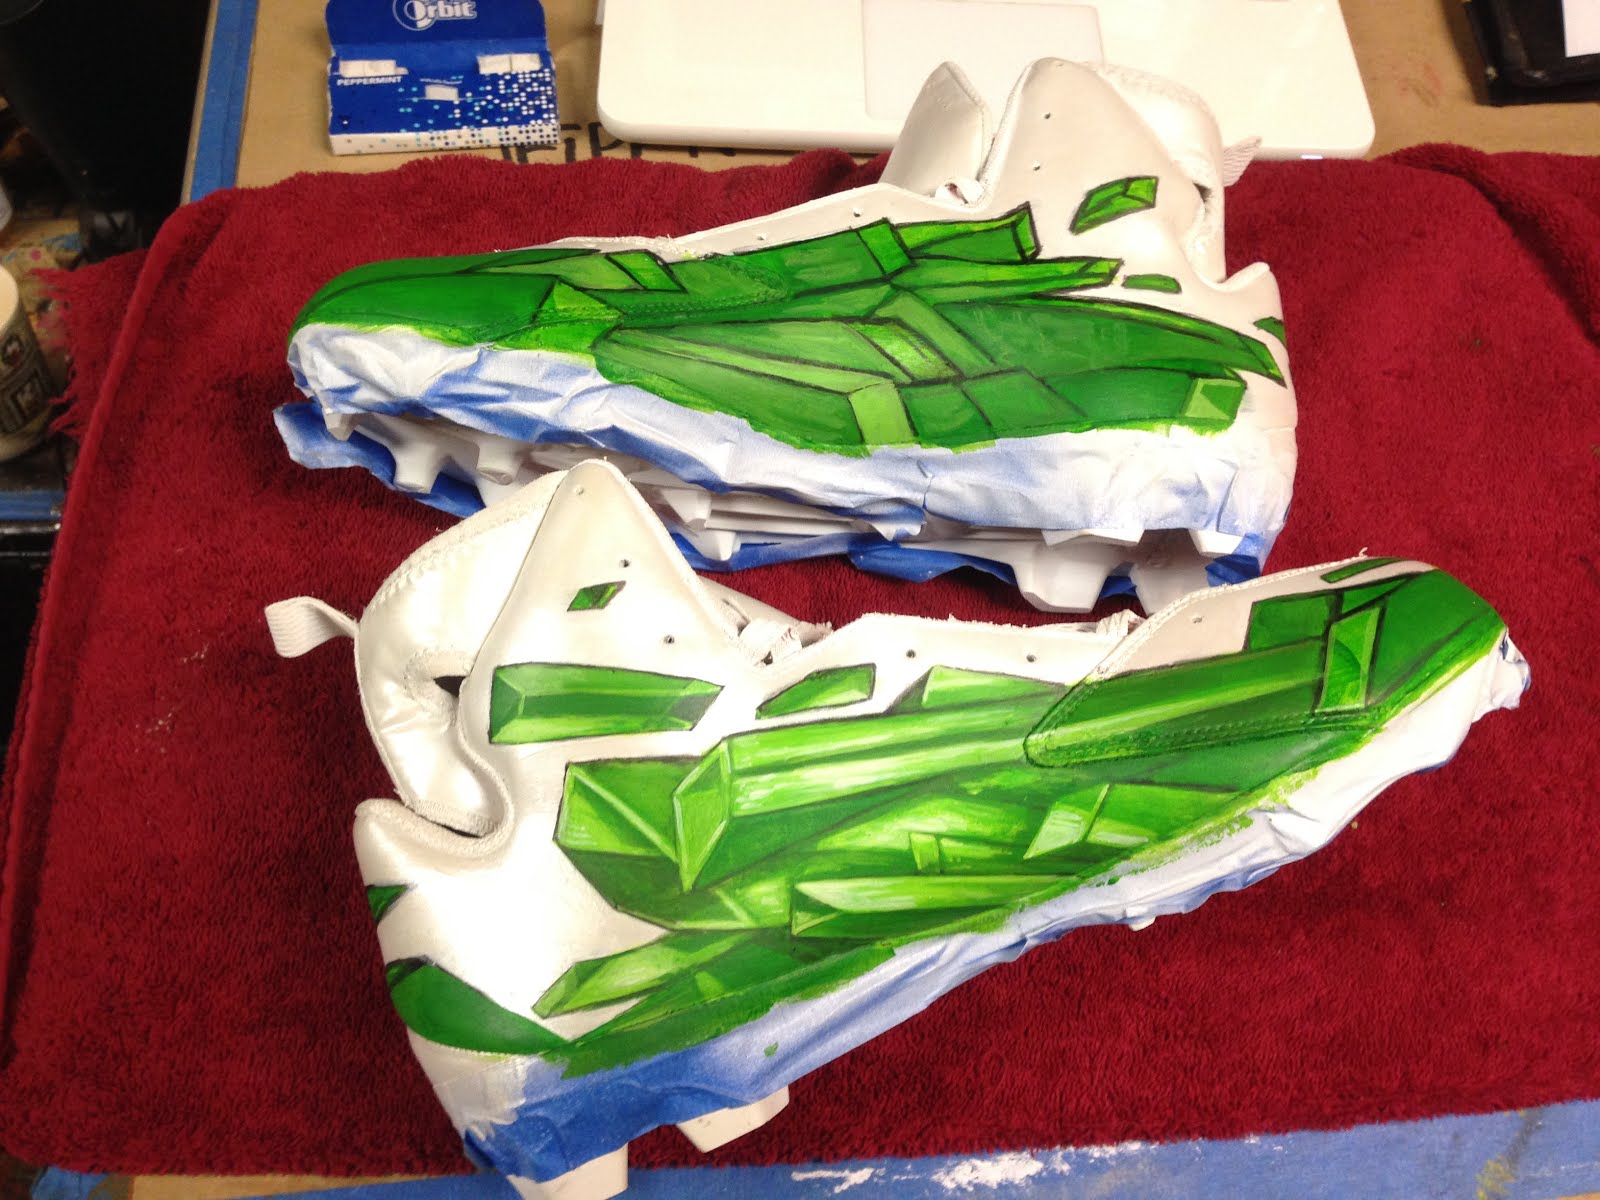 0b31a7369b6b Here are some process shots of me working on the Von Miller Kryptonite  cleats. These were fun to do.